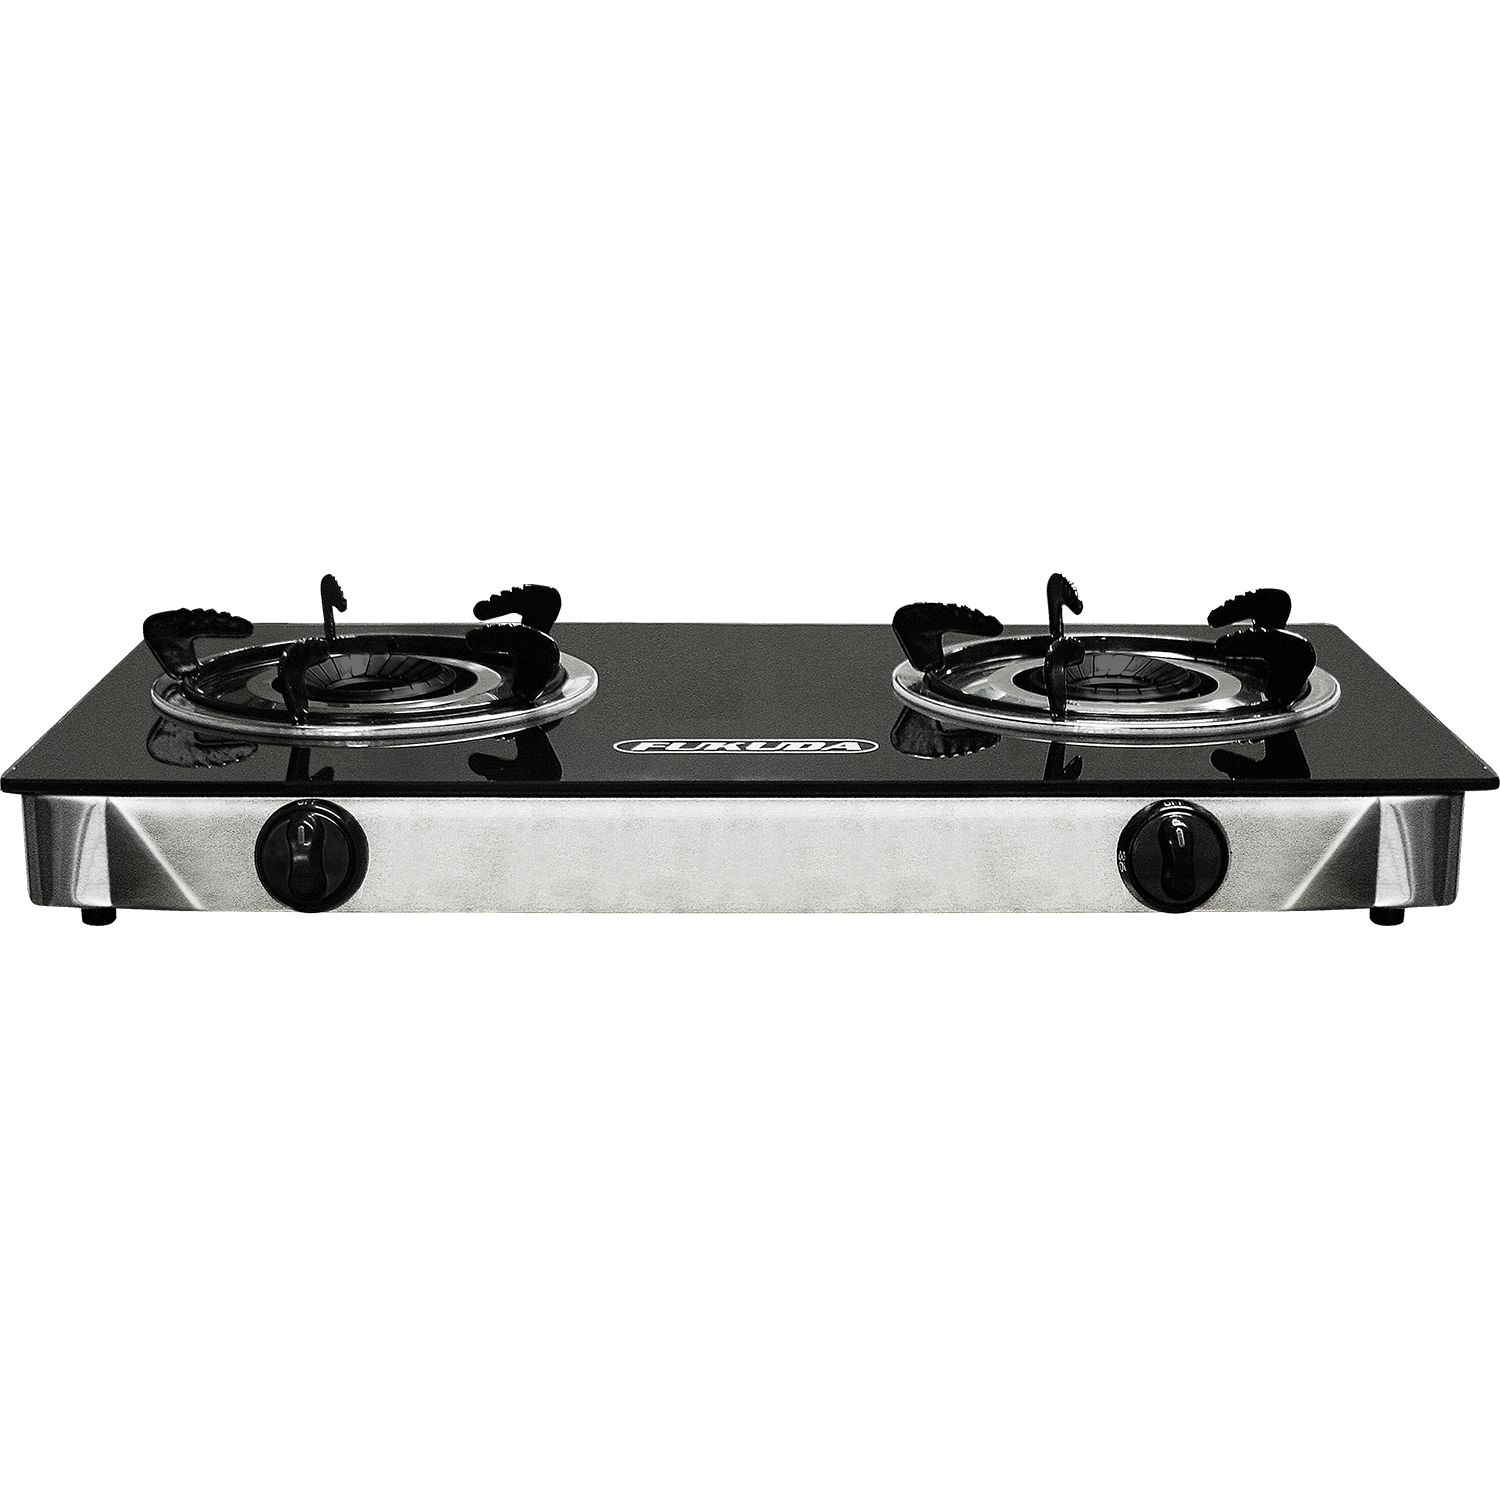 Fukuda FGS900GL Heat Resistant Tempered Glass Top Double Burner Gas Stove